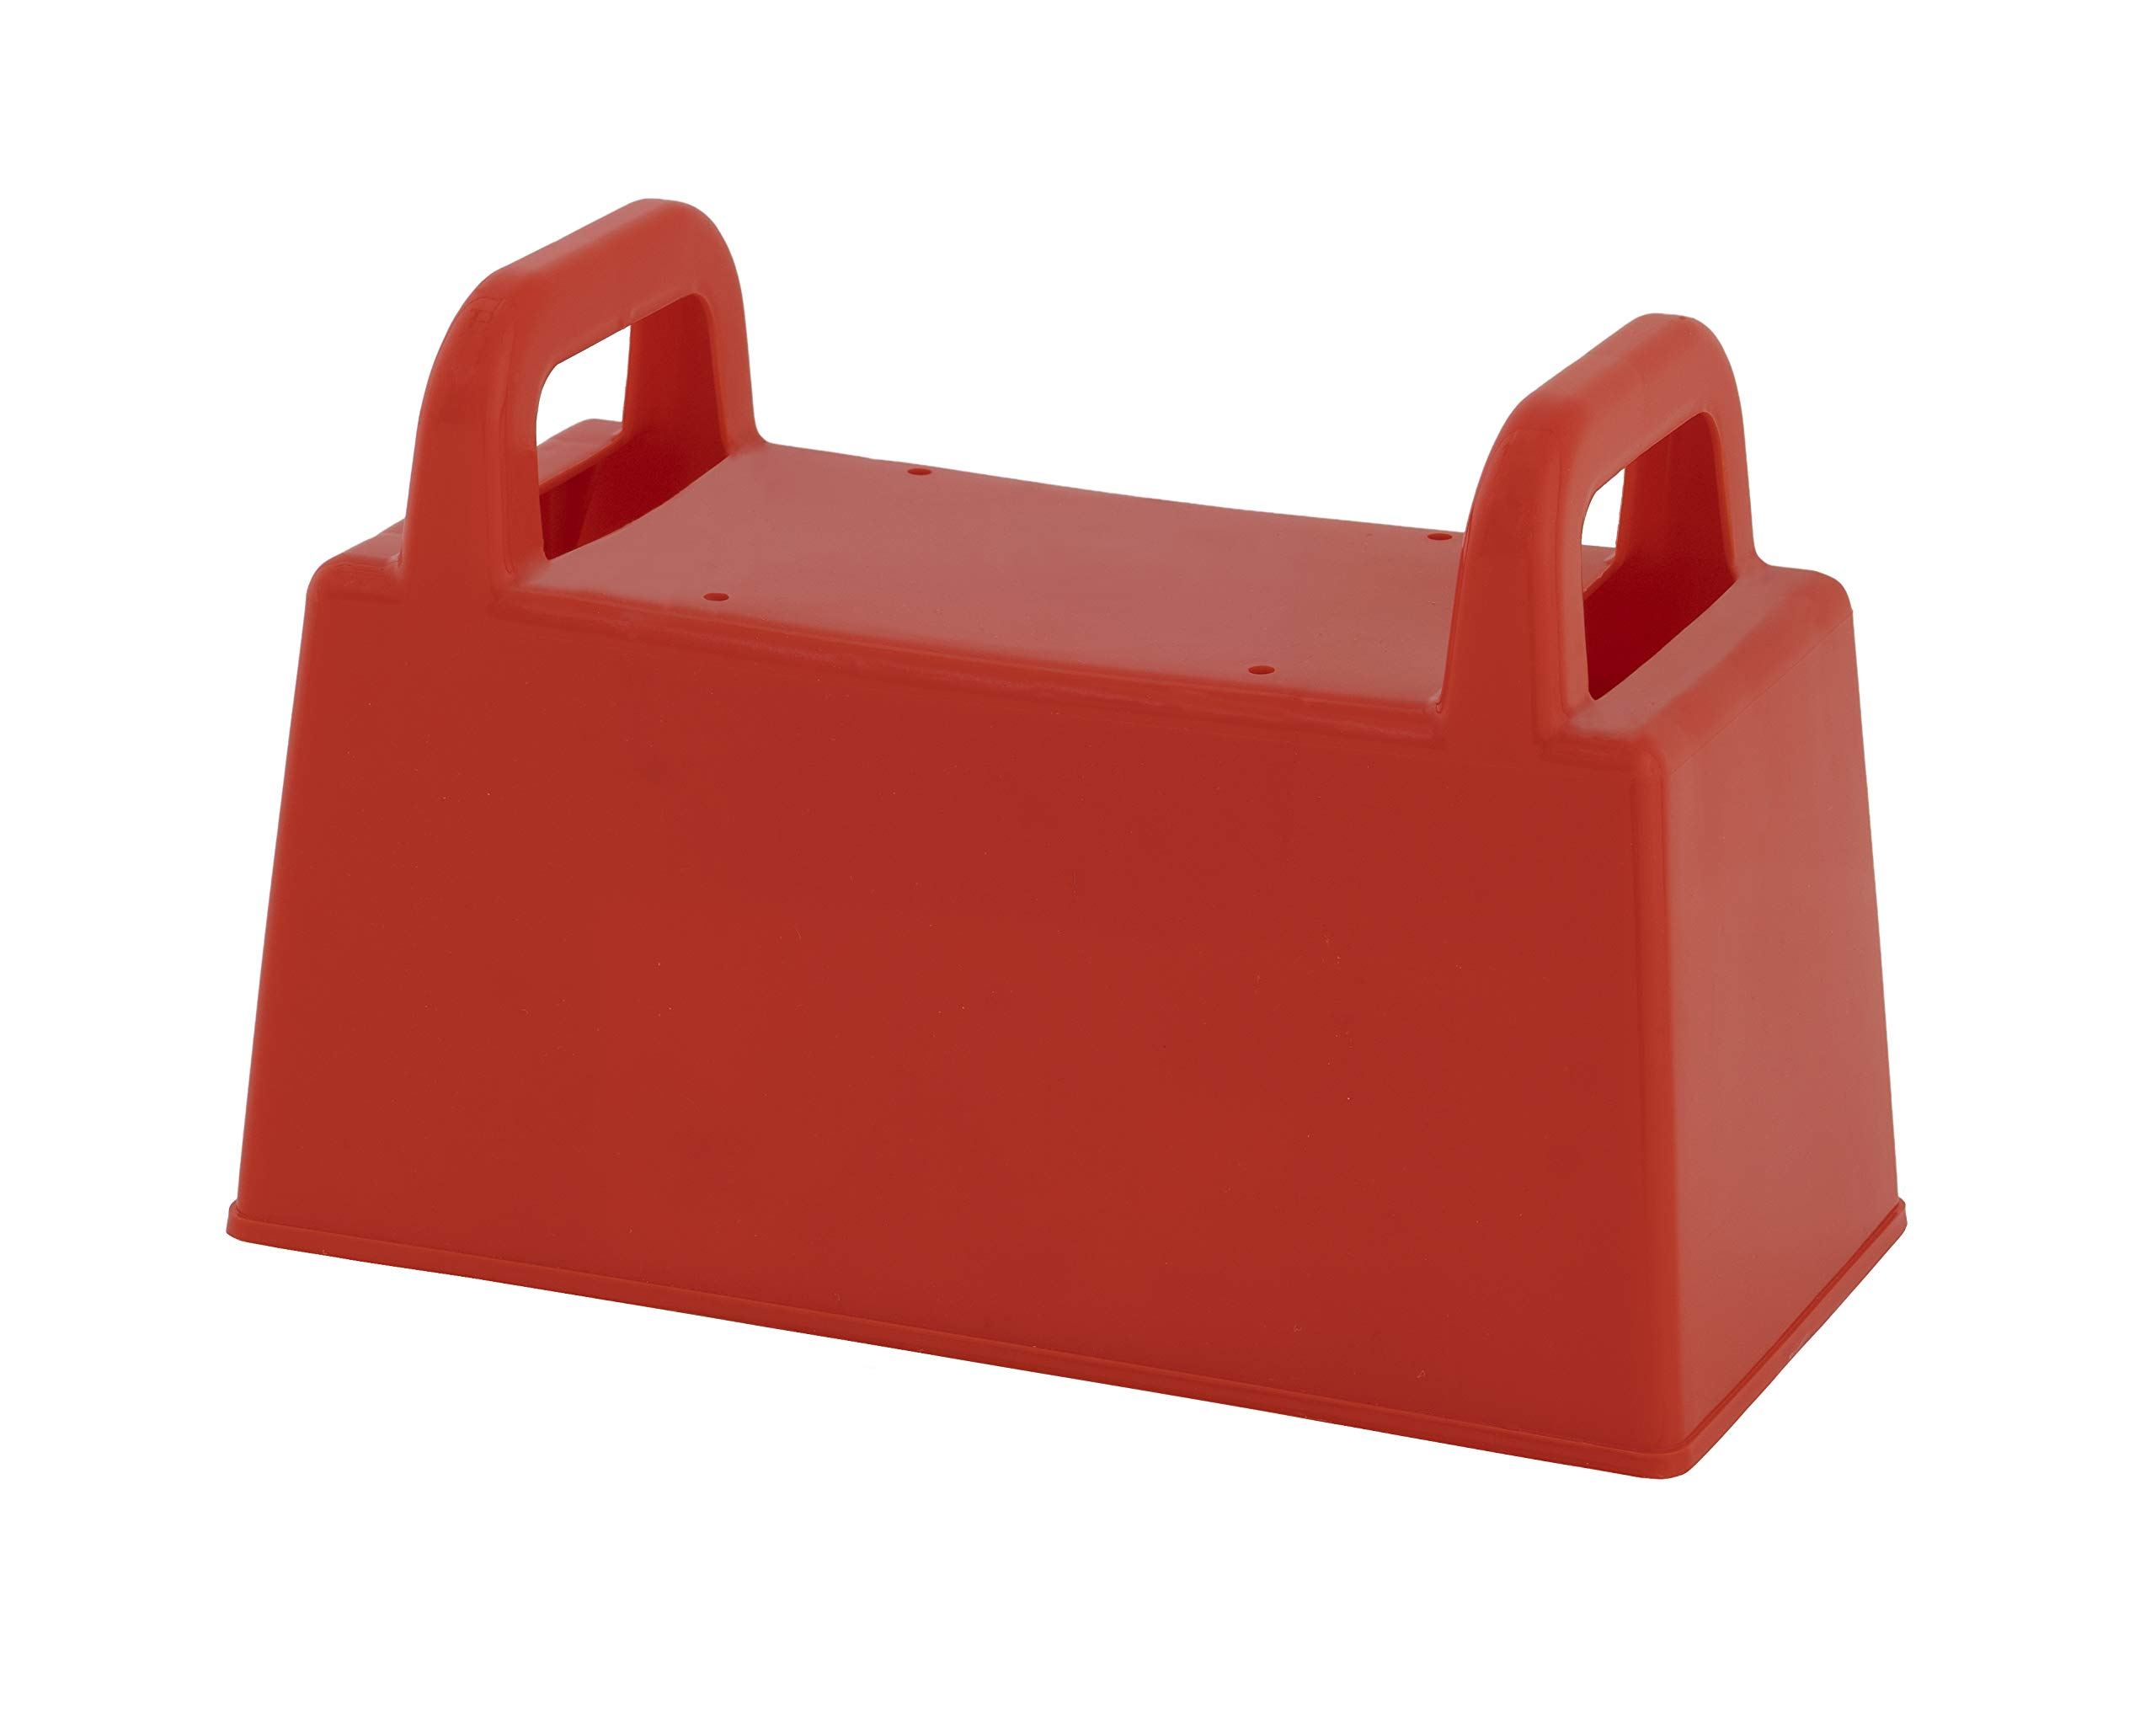 """Superio Sand Block Mold, Red Plastic Brick Shape Mold, 10"""" Sand Mold to Build Sand Castle Beach Mansion, Sand Box Toys for Kids, Snow Brick Mold Outdoor Toy for Spring and Summer"""